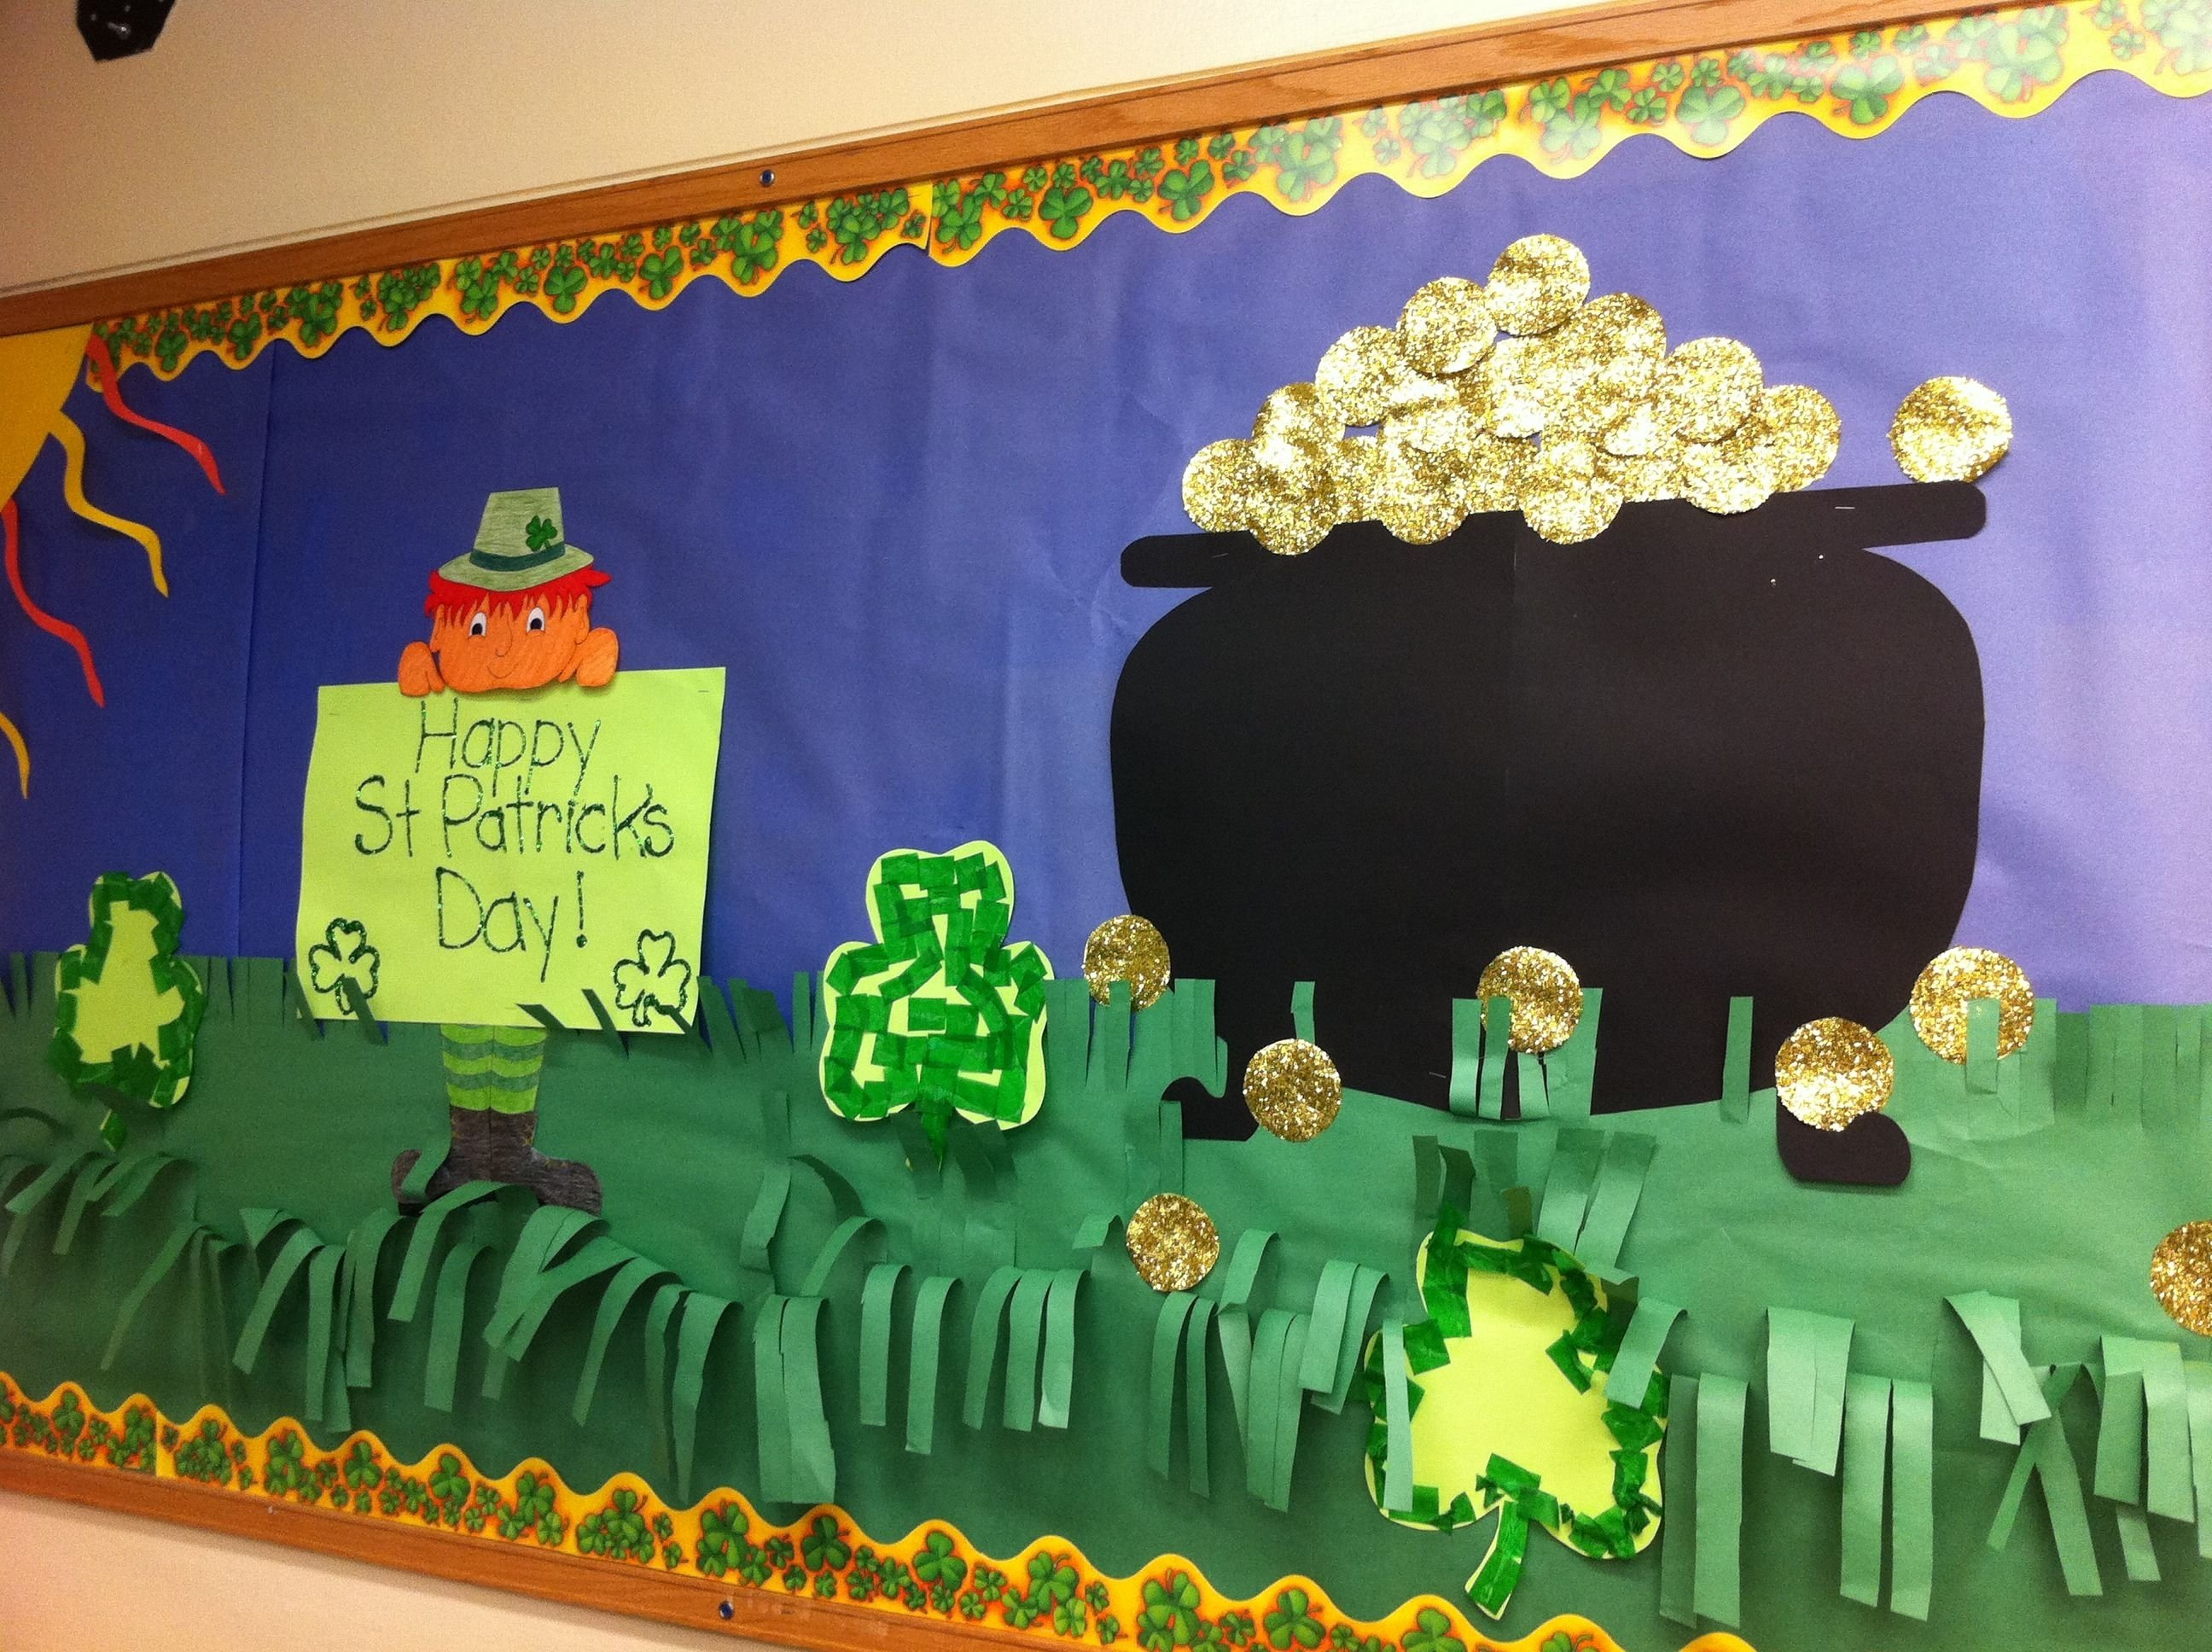 10 Most Recommended Bulletin Board Ideas For March march bulletin board school ideas pinterest bulletin board 1 2021